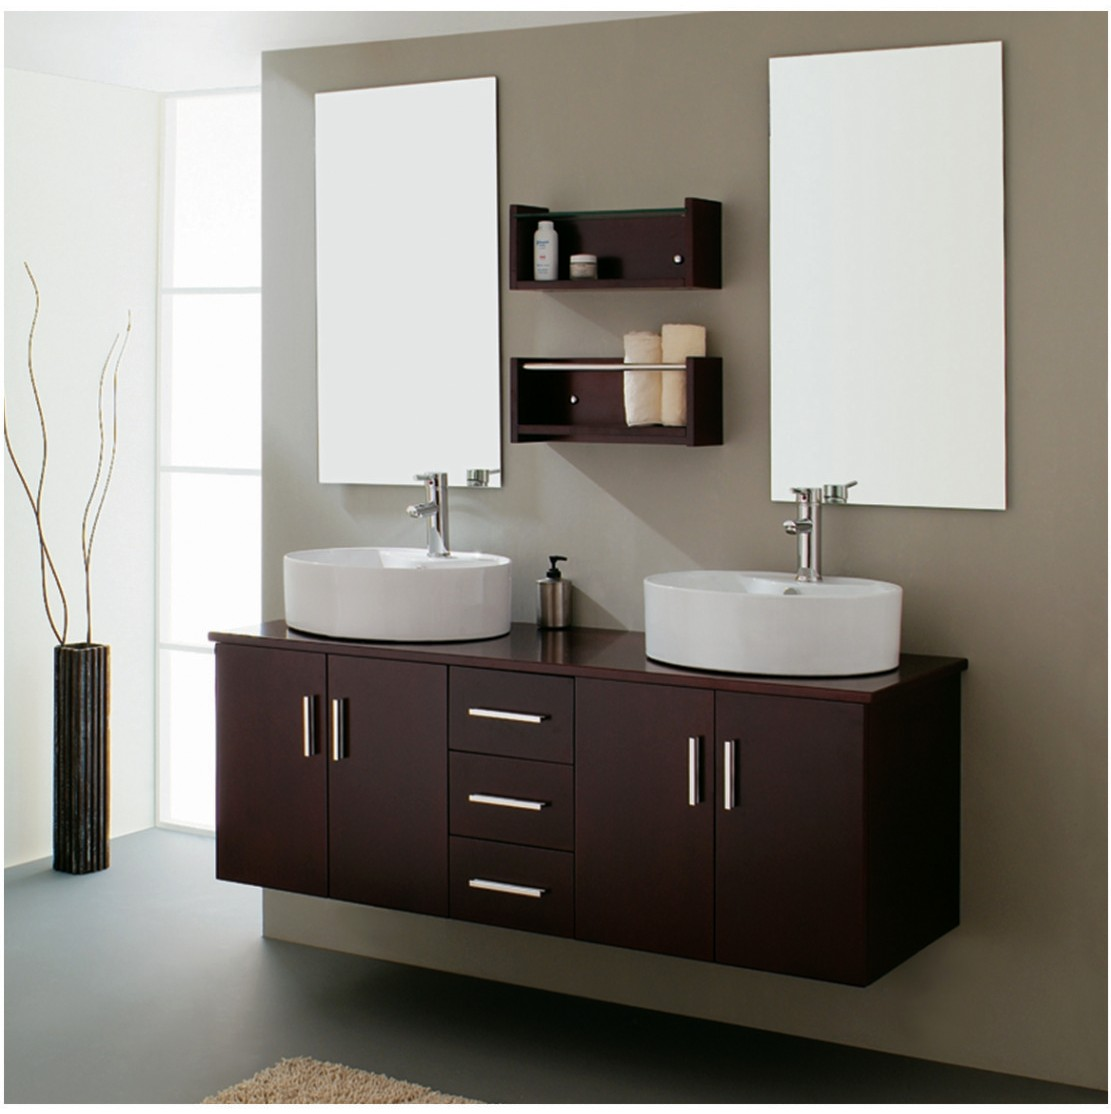 Modern bathroom double sink home decorating ideas Bathroom sink cabinets modern